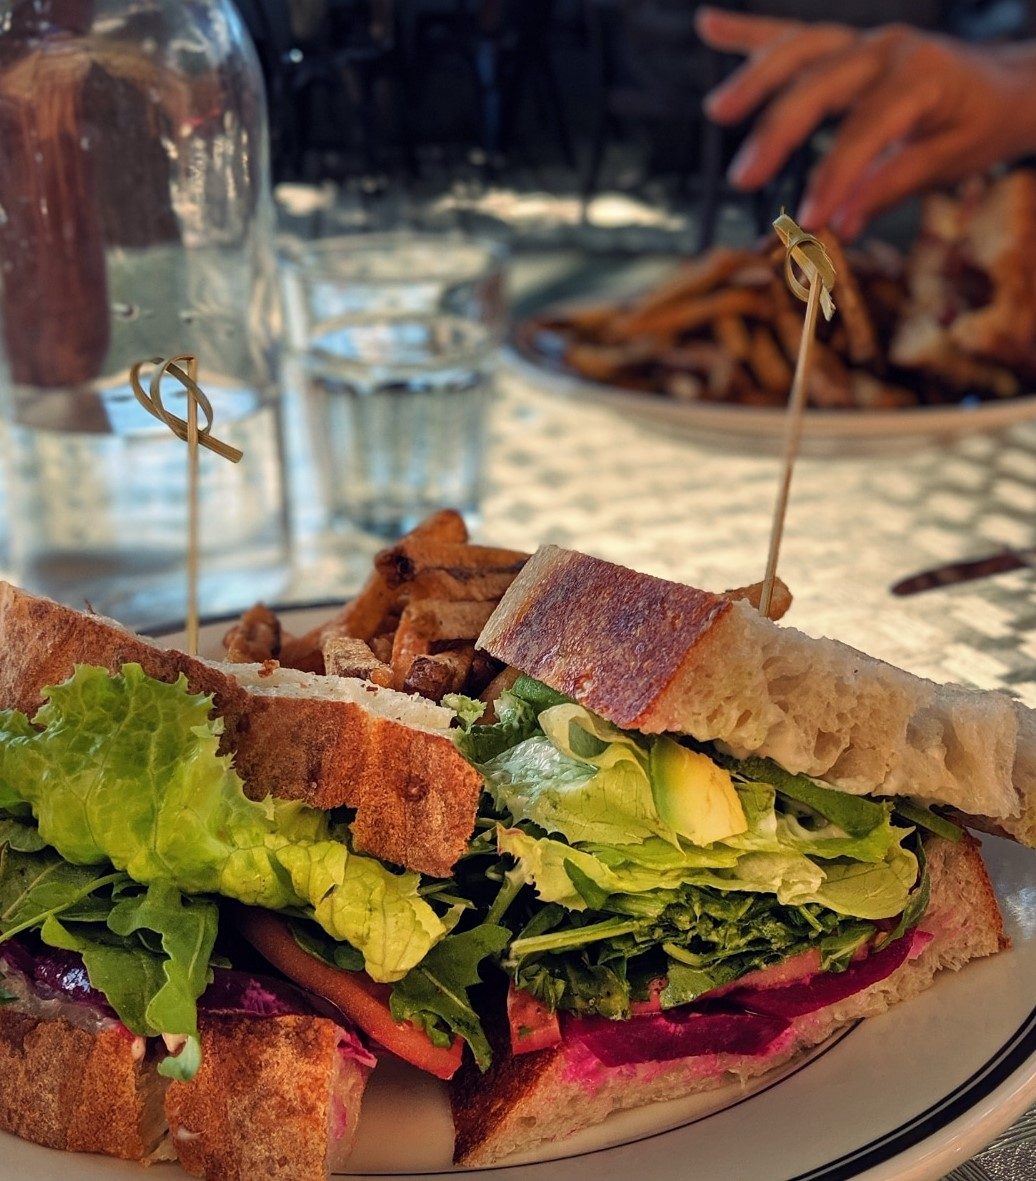 Nothing to see here, just a veg packed beet sandwich at  335 On The Ridge  in Ridgeway Ontario, and ya can't beet that!